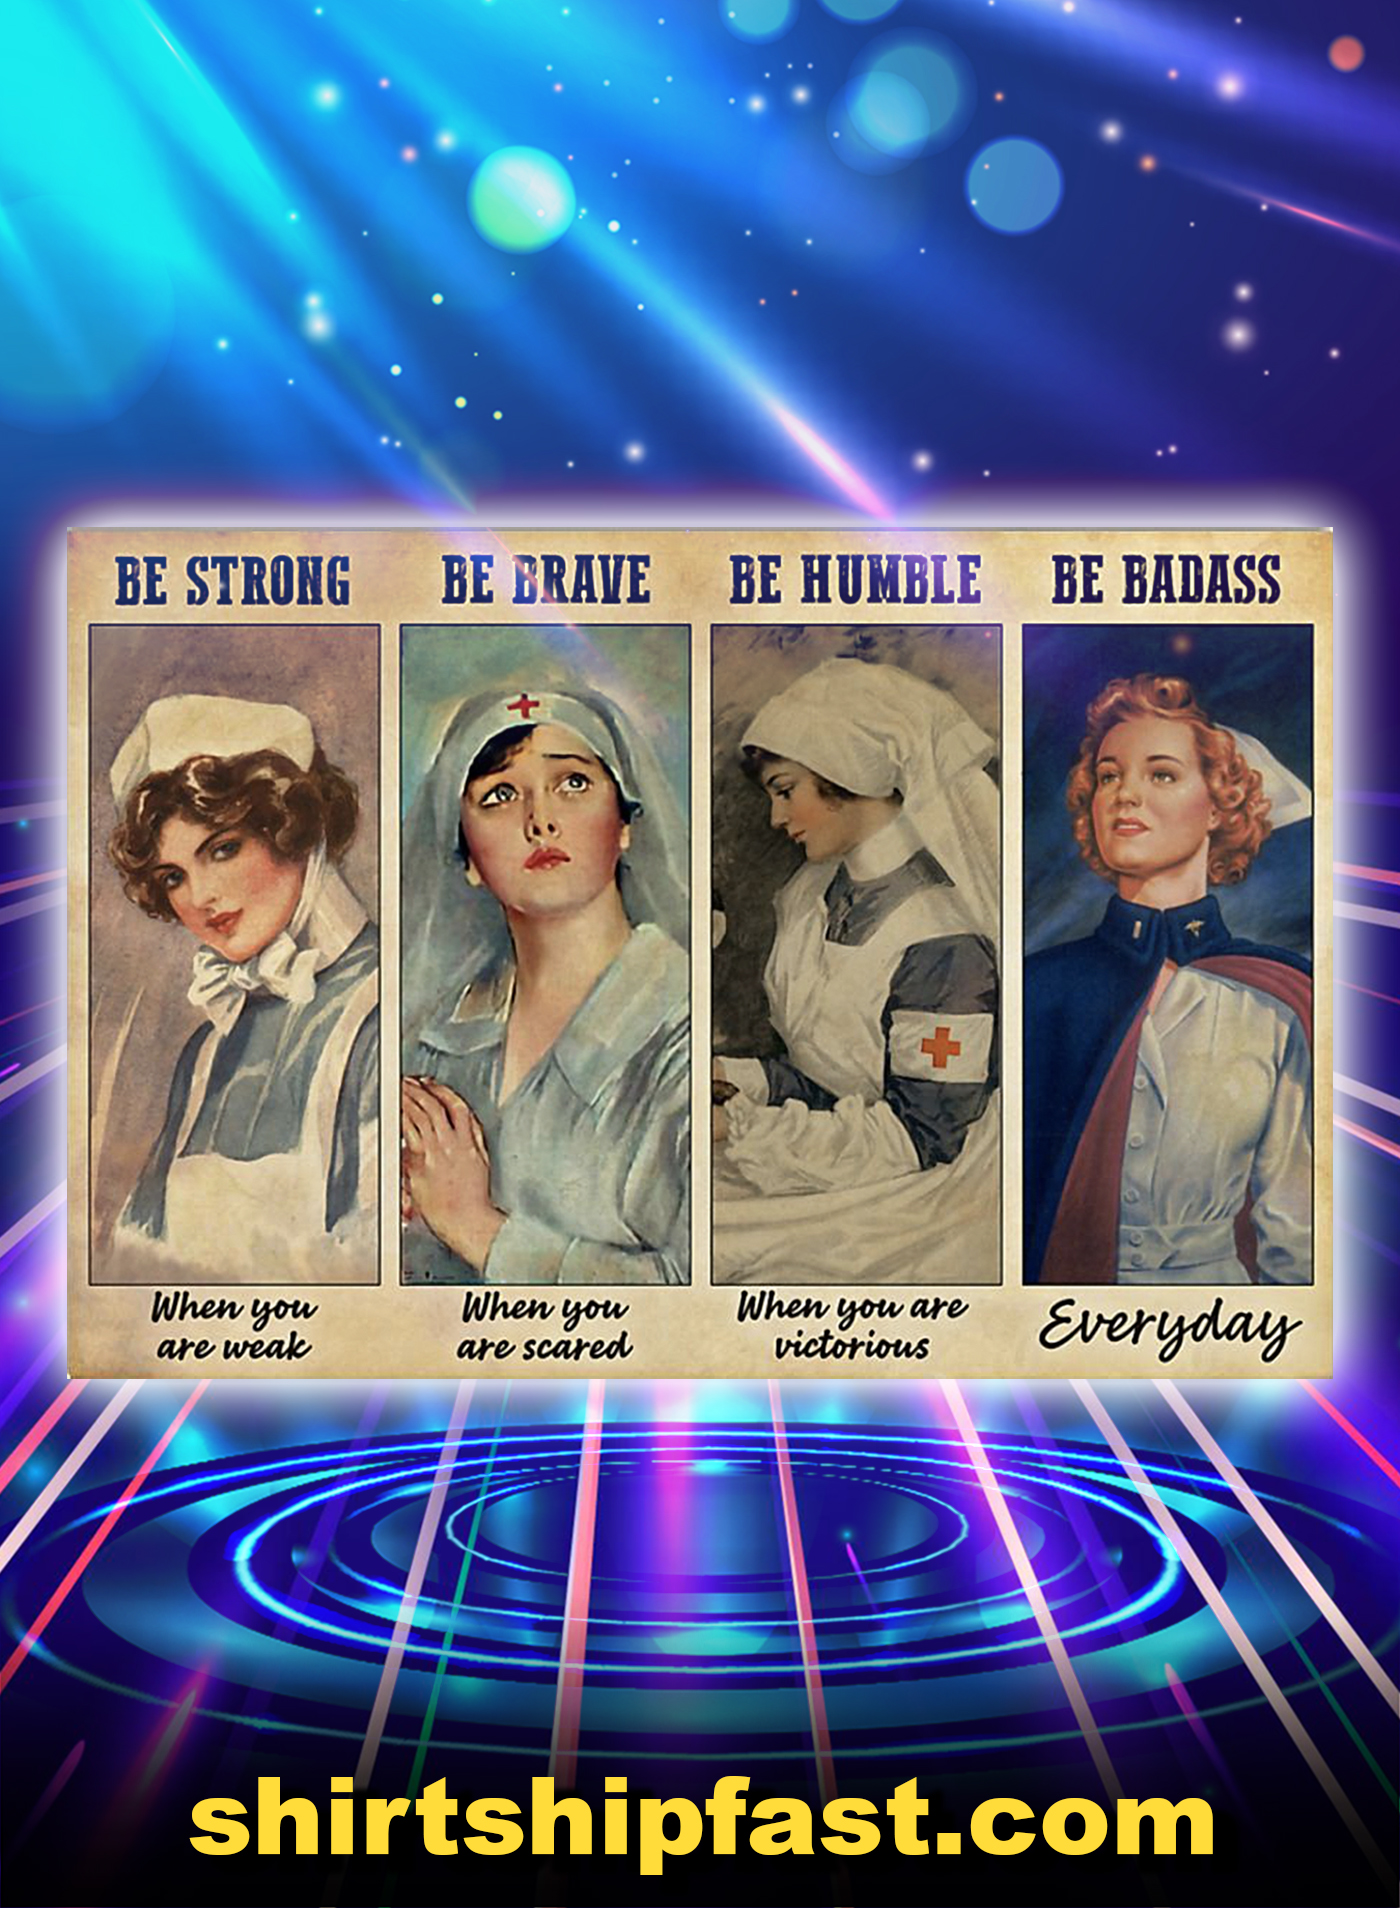 Nurses be strong be brave be humble be badass poster - A1